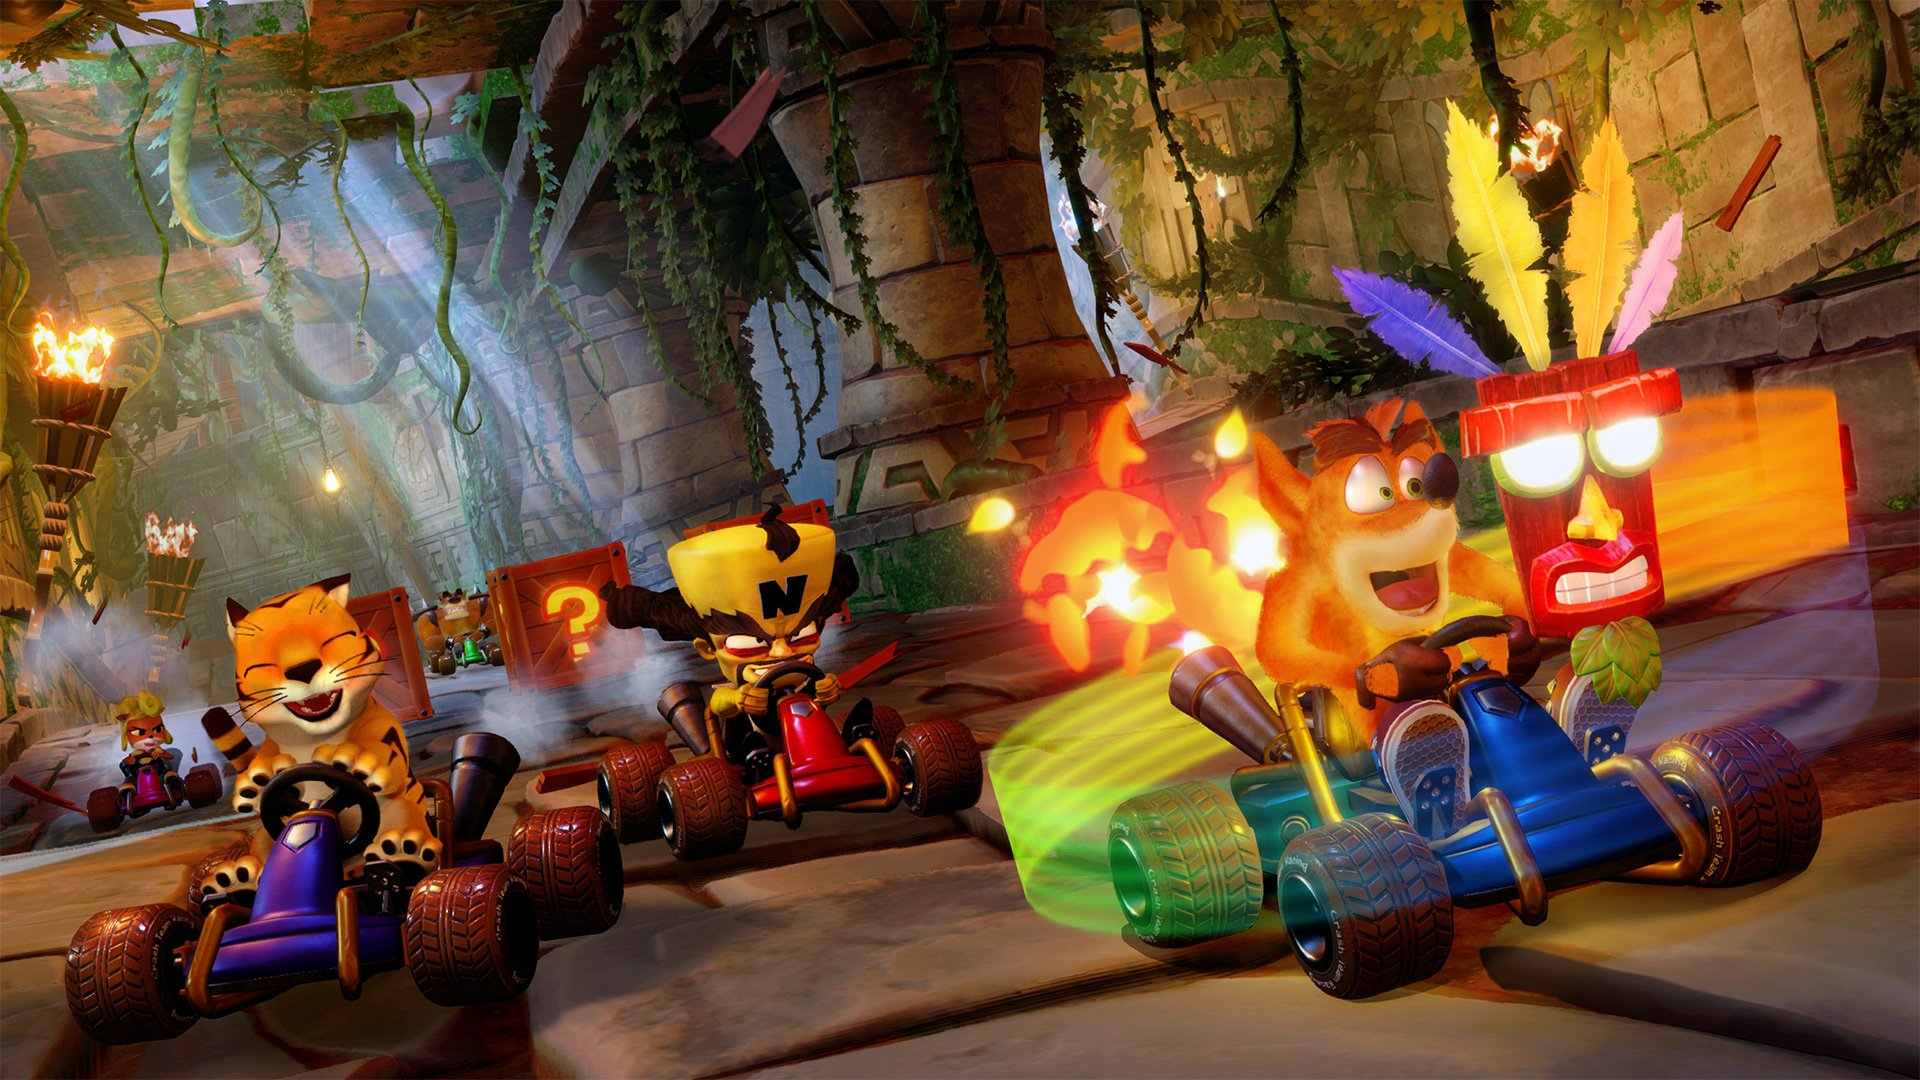 CTR Nitro-Fueled - All Characters, Their Stats, and How to Unlock